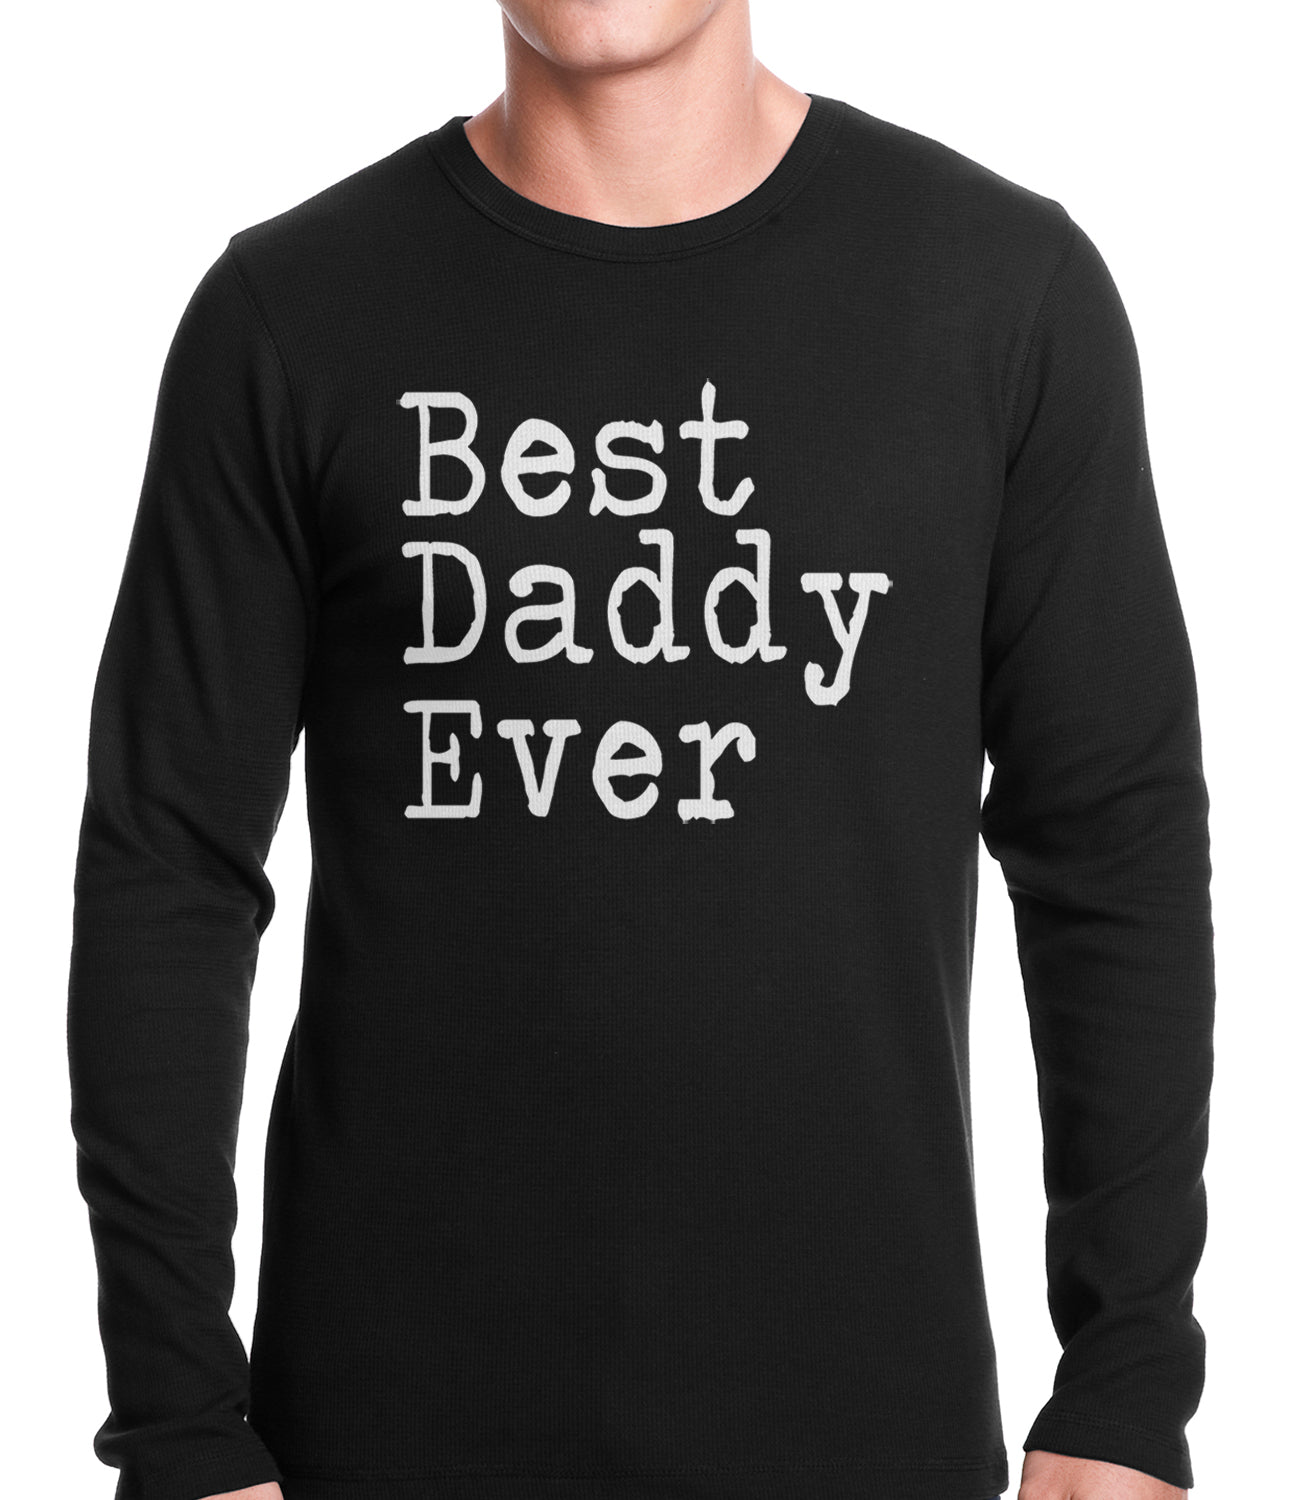 Best Daddy Ever Thermal Shirt